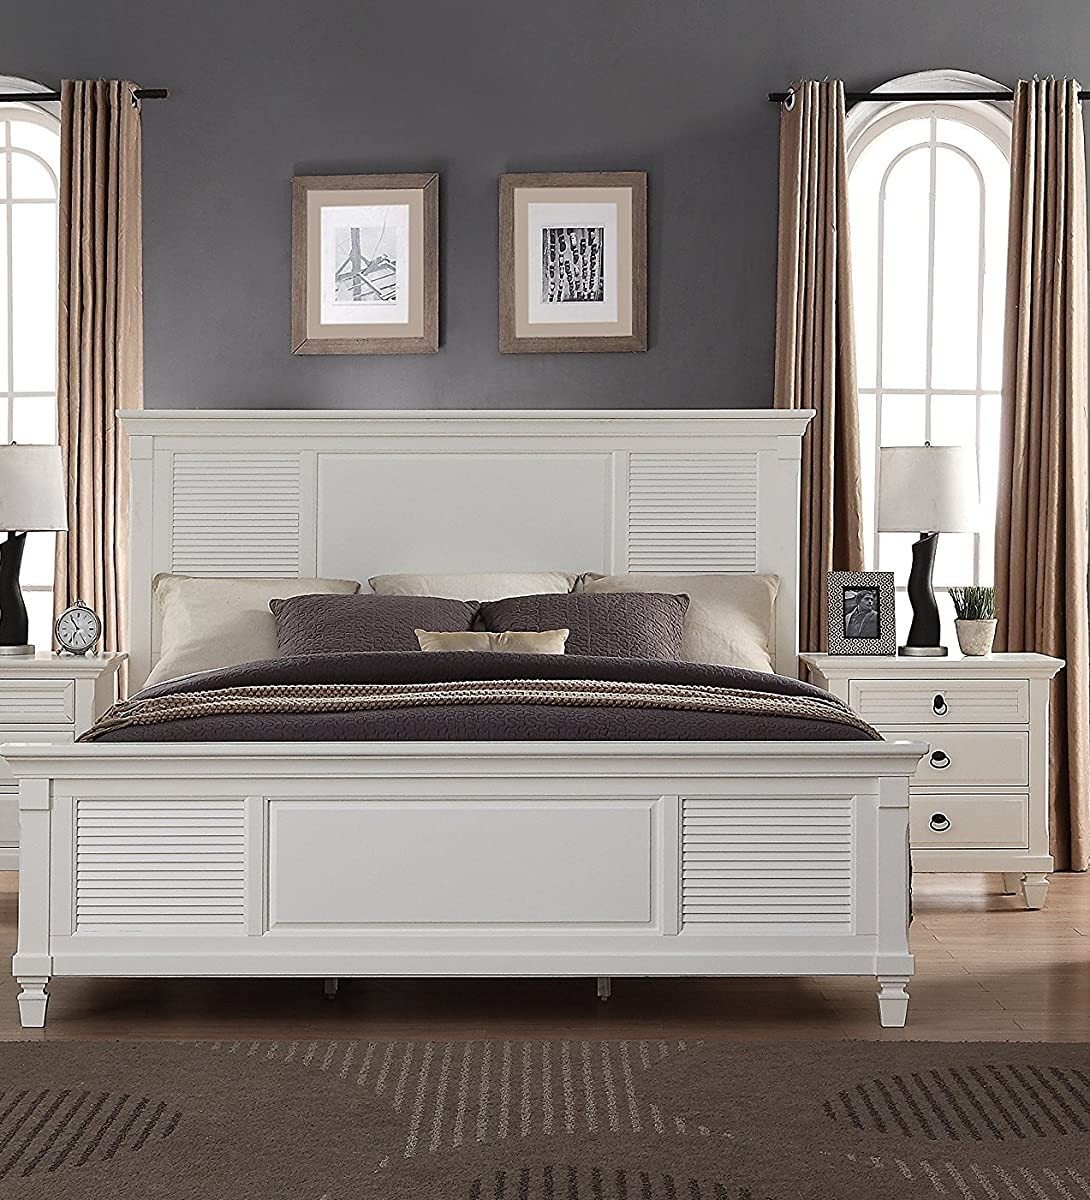 Roundhill Furniture Regitina 016 Bedroom Furniture Set, Queen Bed, Dresser, Mirror, Nightstand and Chest, White